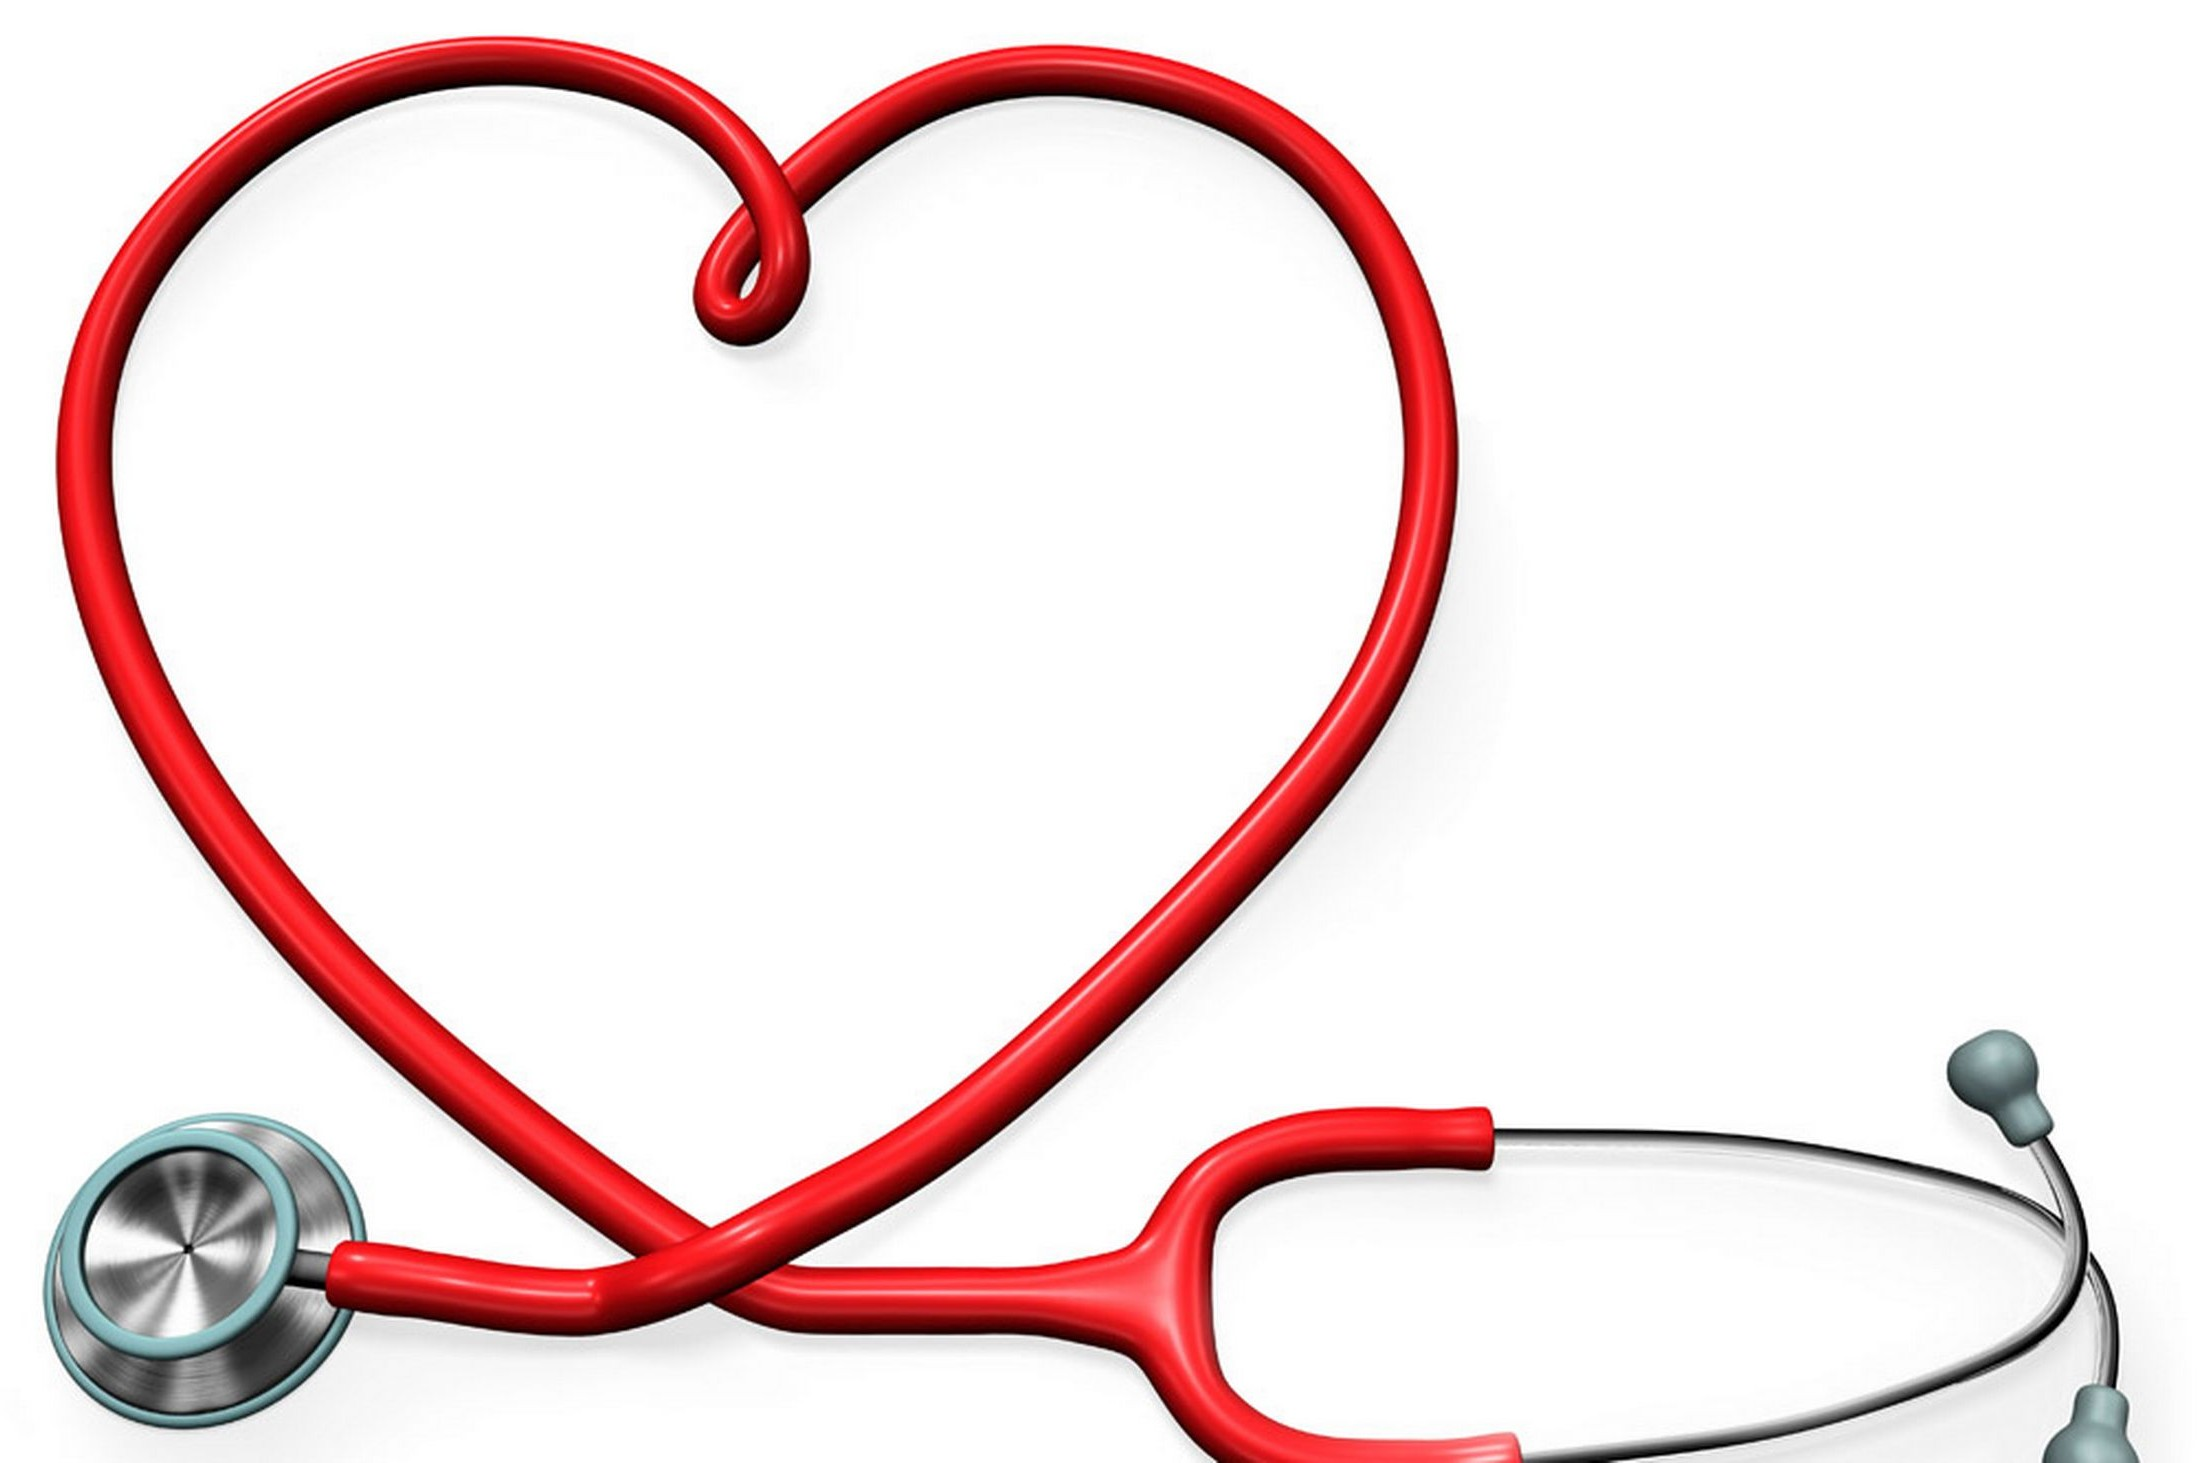 heart shape clipart at getdrawings com free for personal use heart